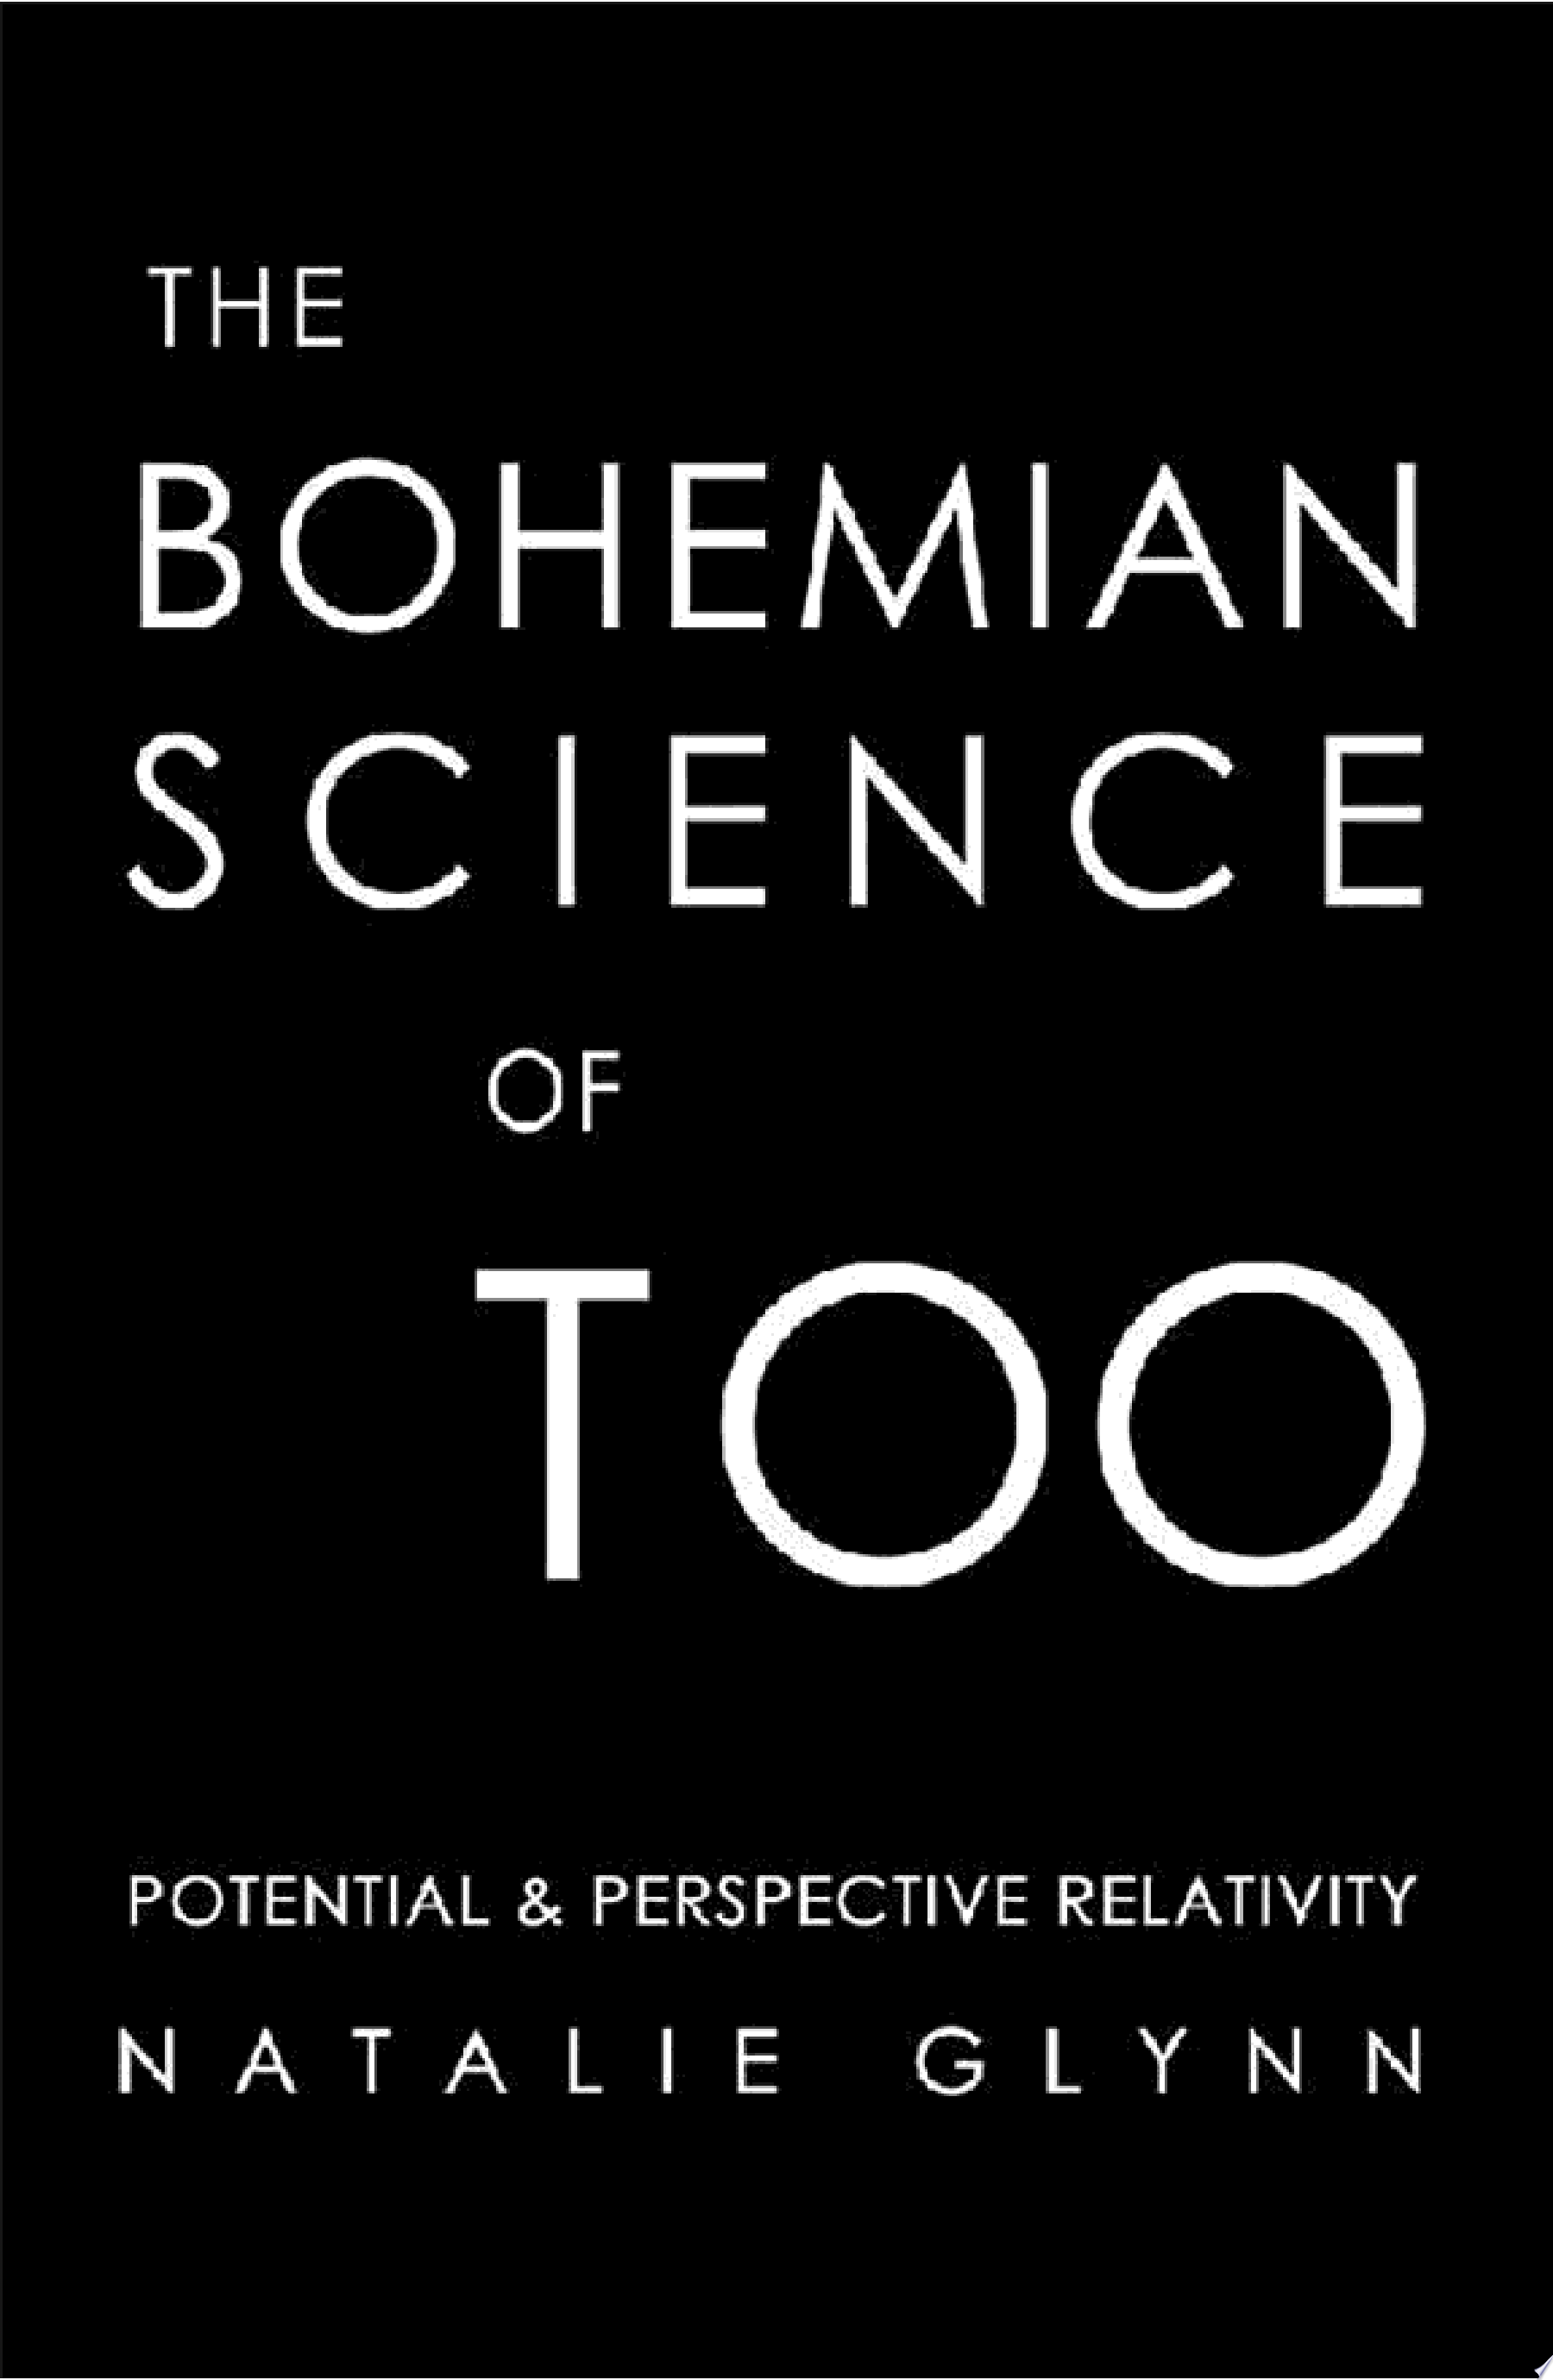 The Bohemian Science of Too